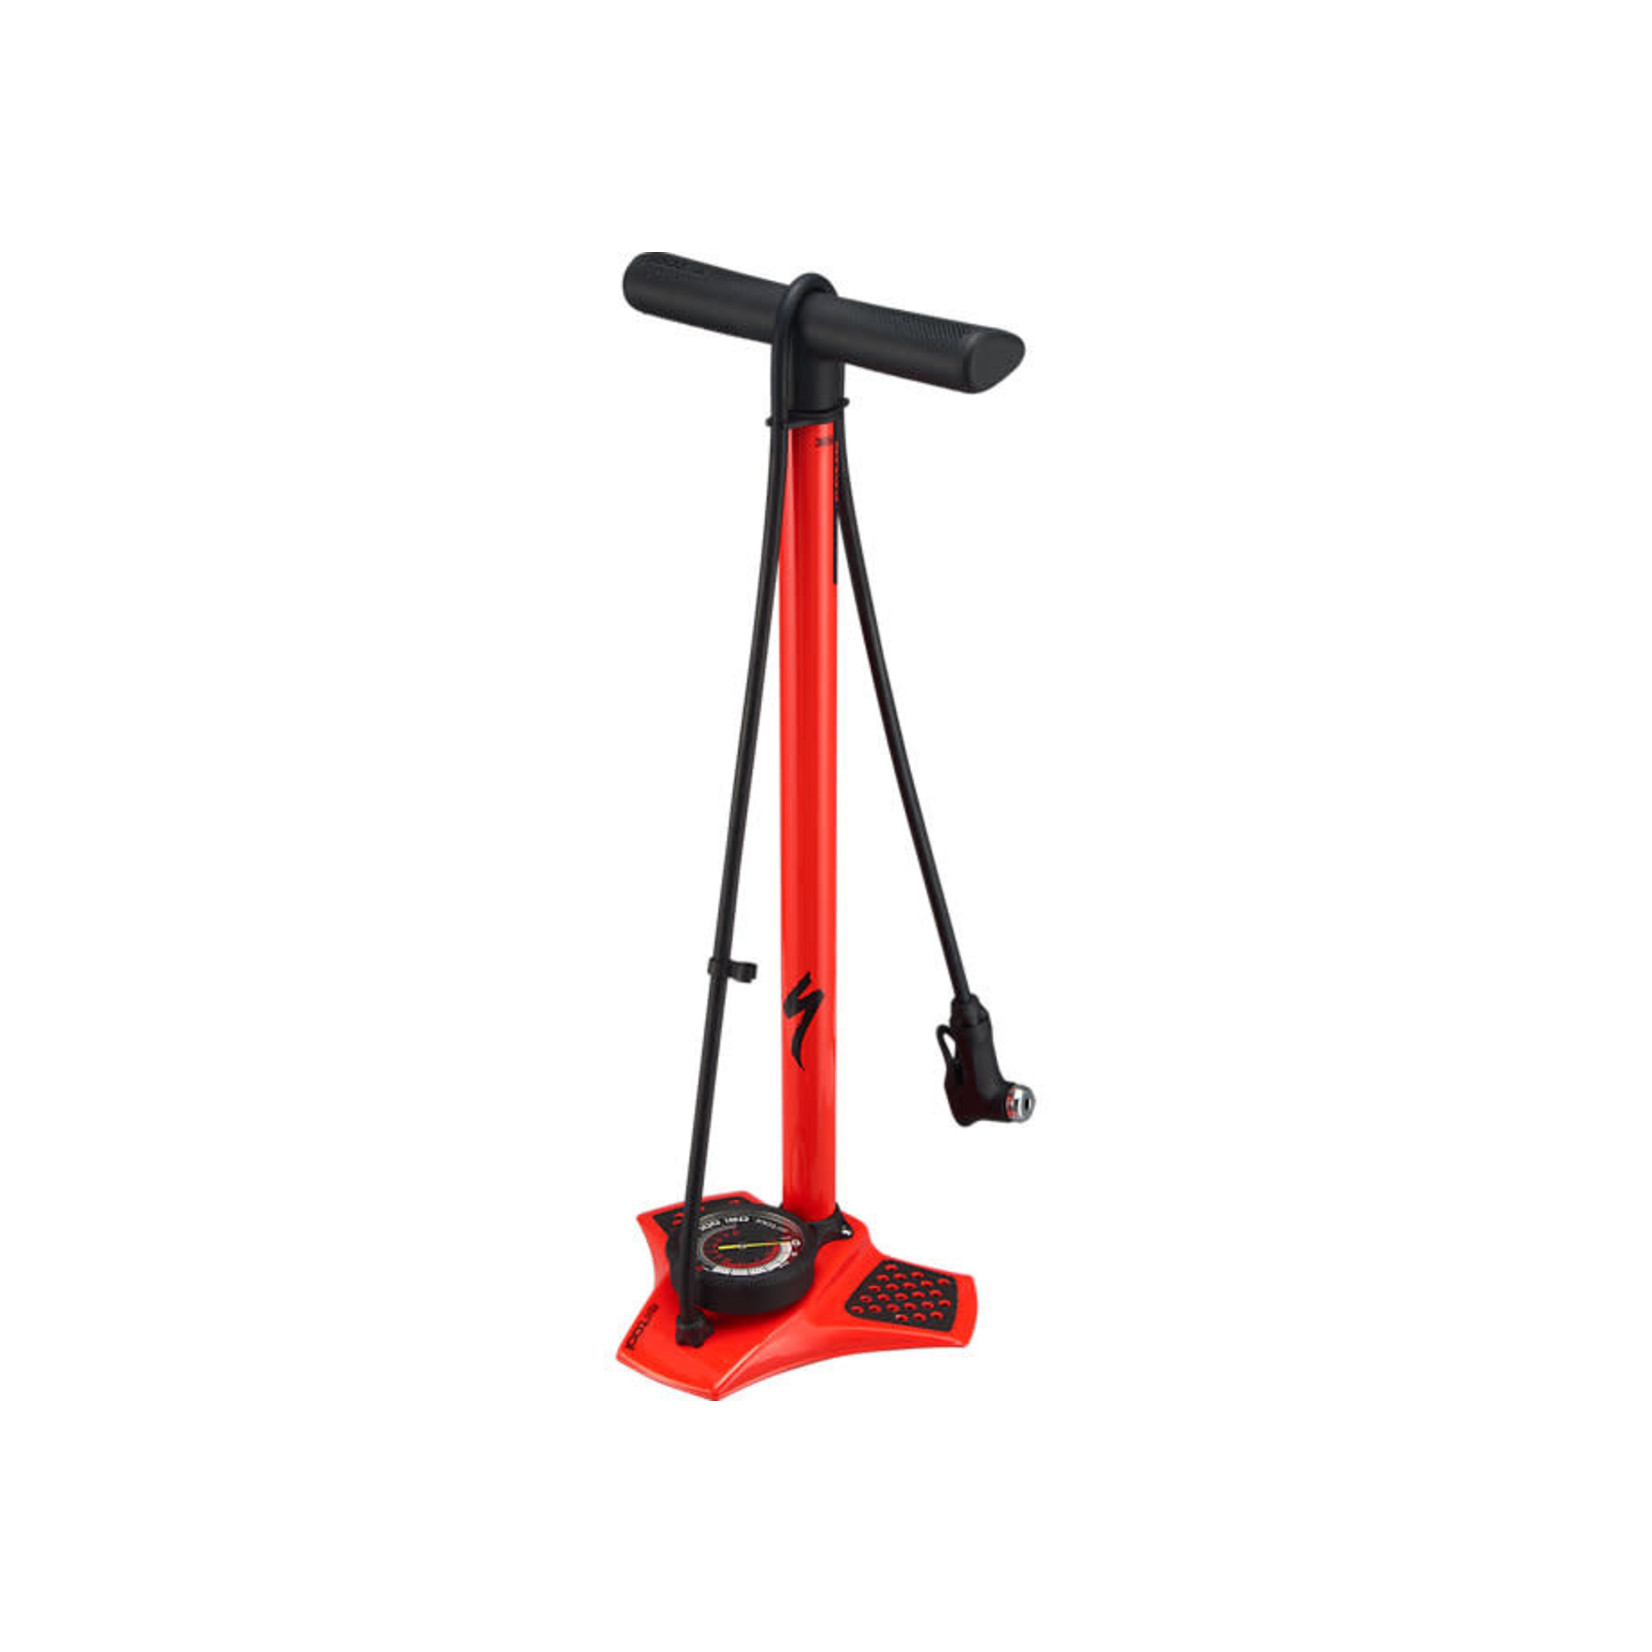 Specialized Specialized Airtool MTB Floor Pump Red